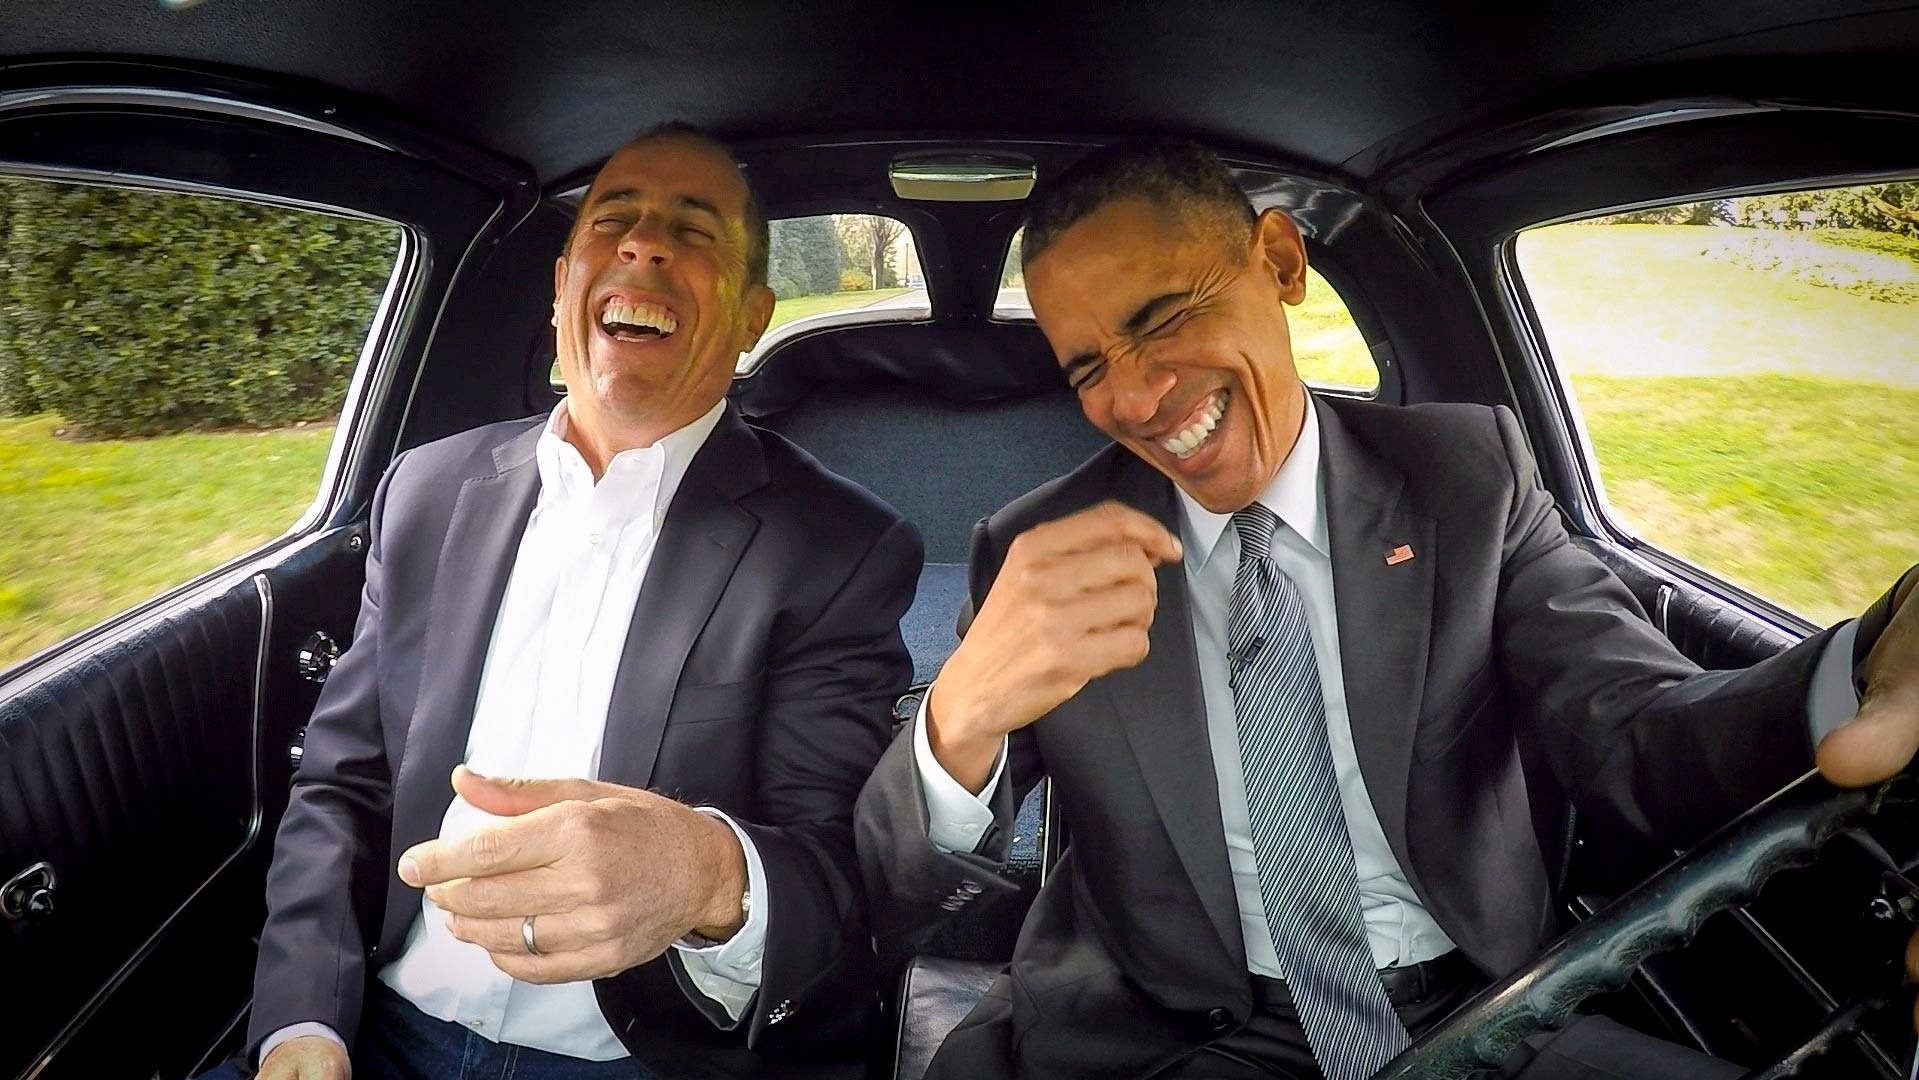 Commedians In Cars: 'Comedians In Cars Getting Coffee' Is Moving To Netflix